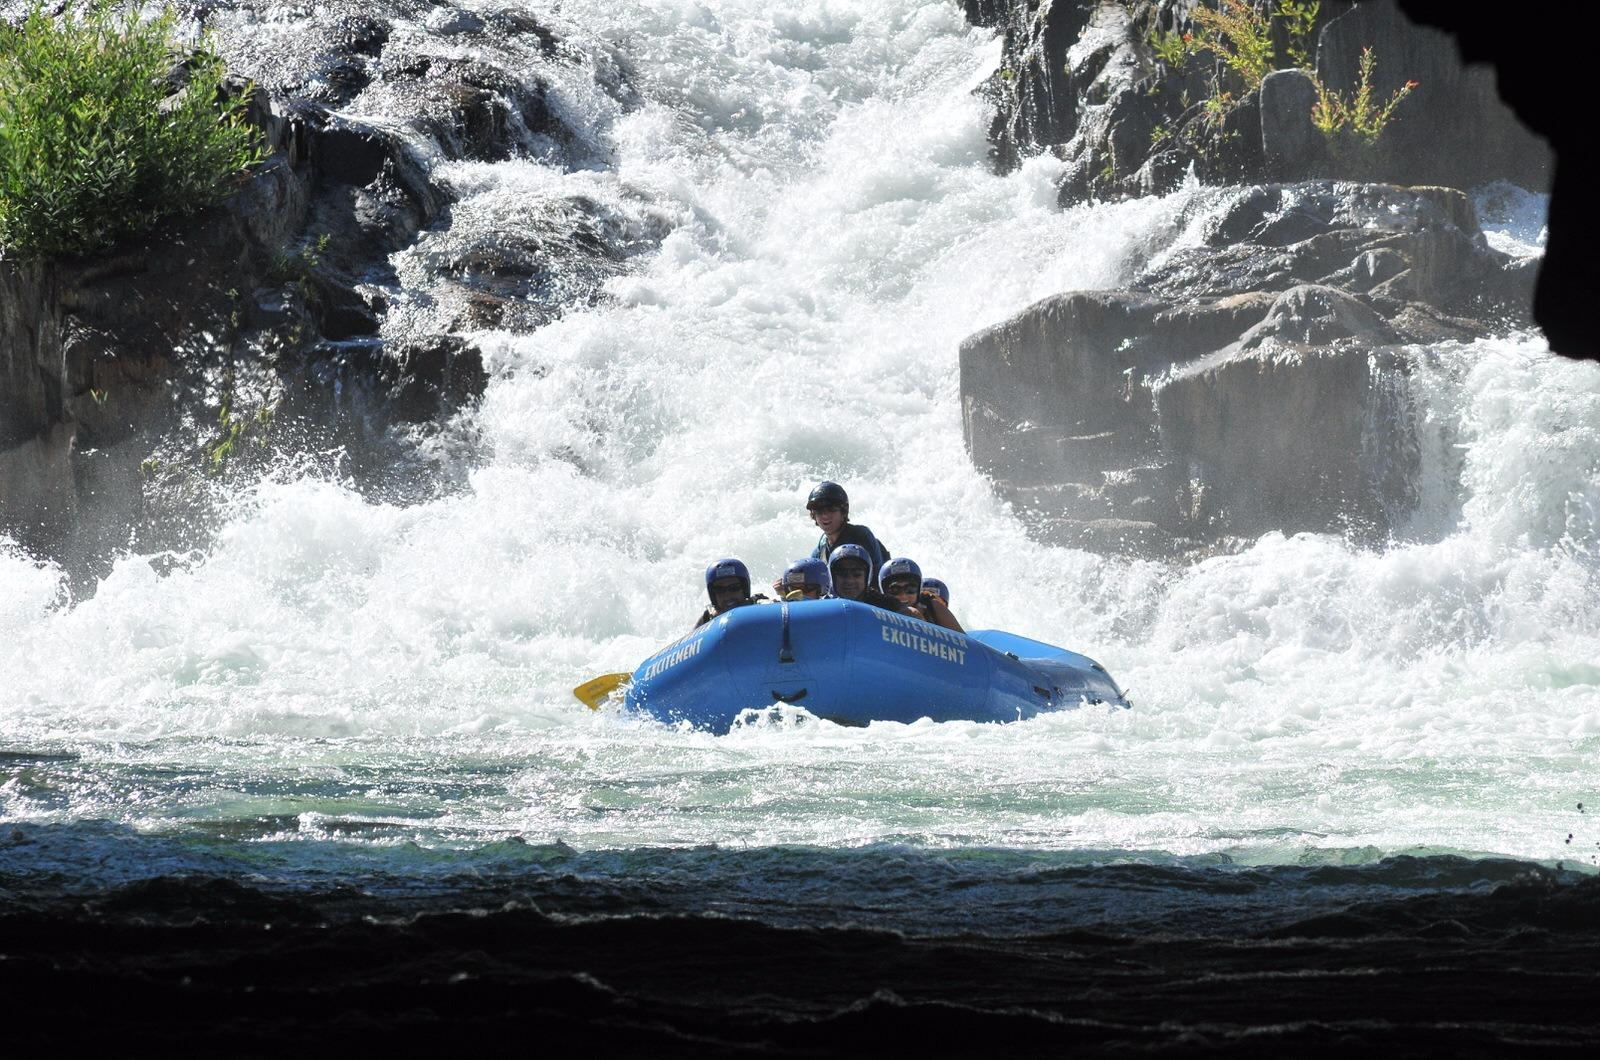 Whitewater Excitement, Inc. image 1